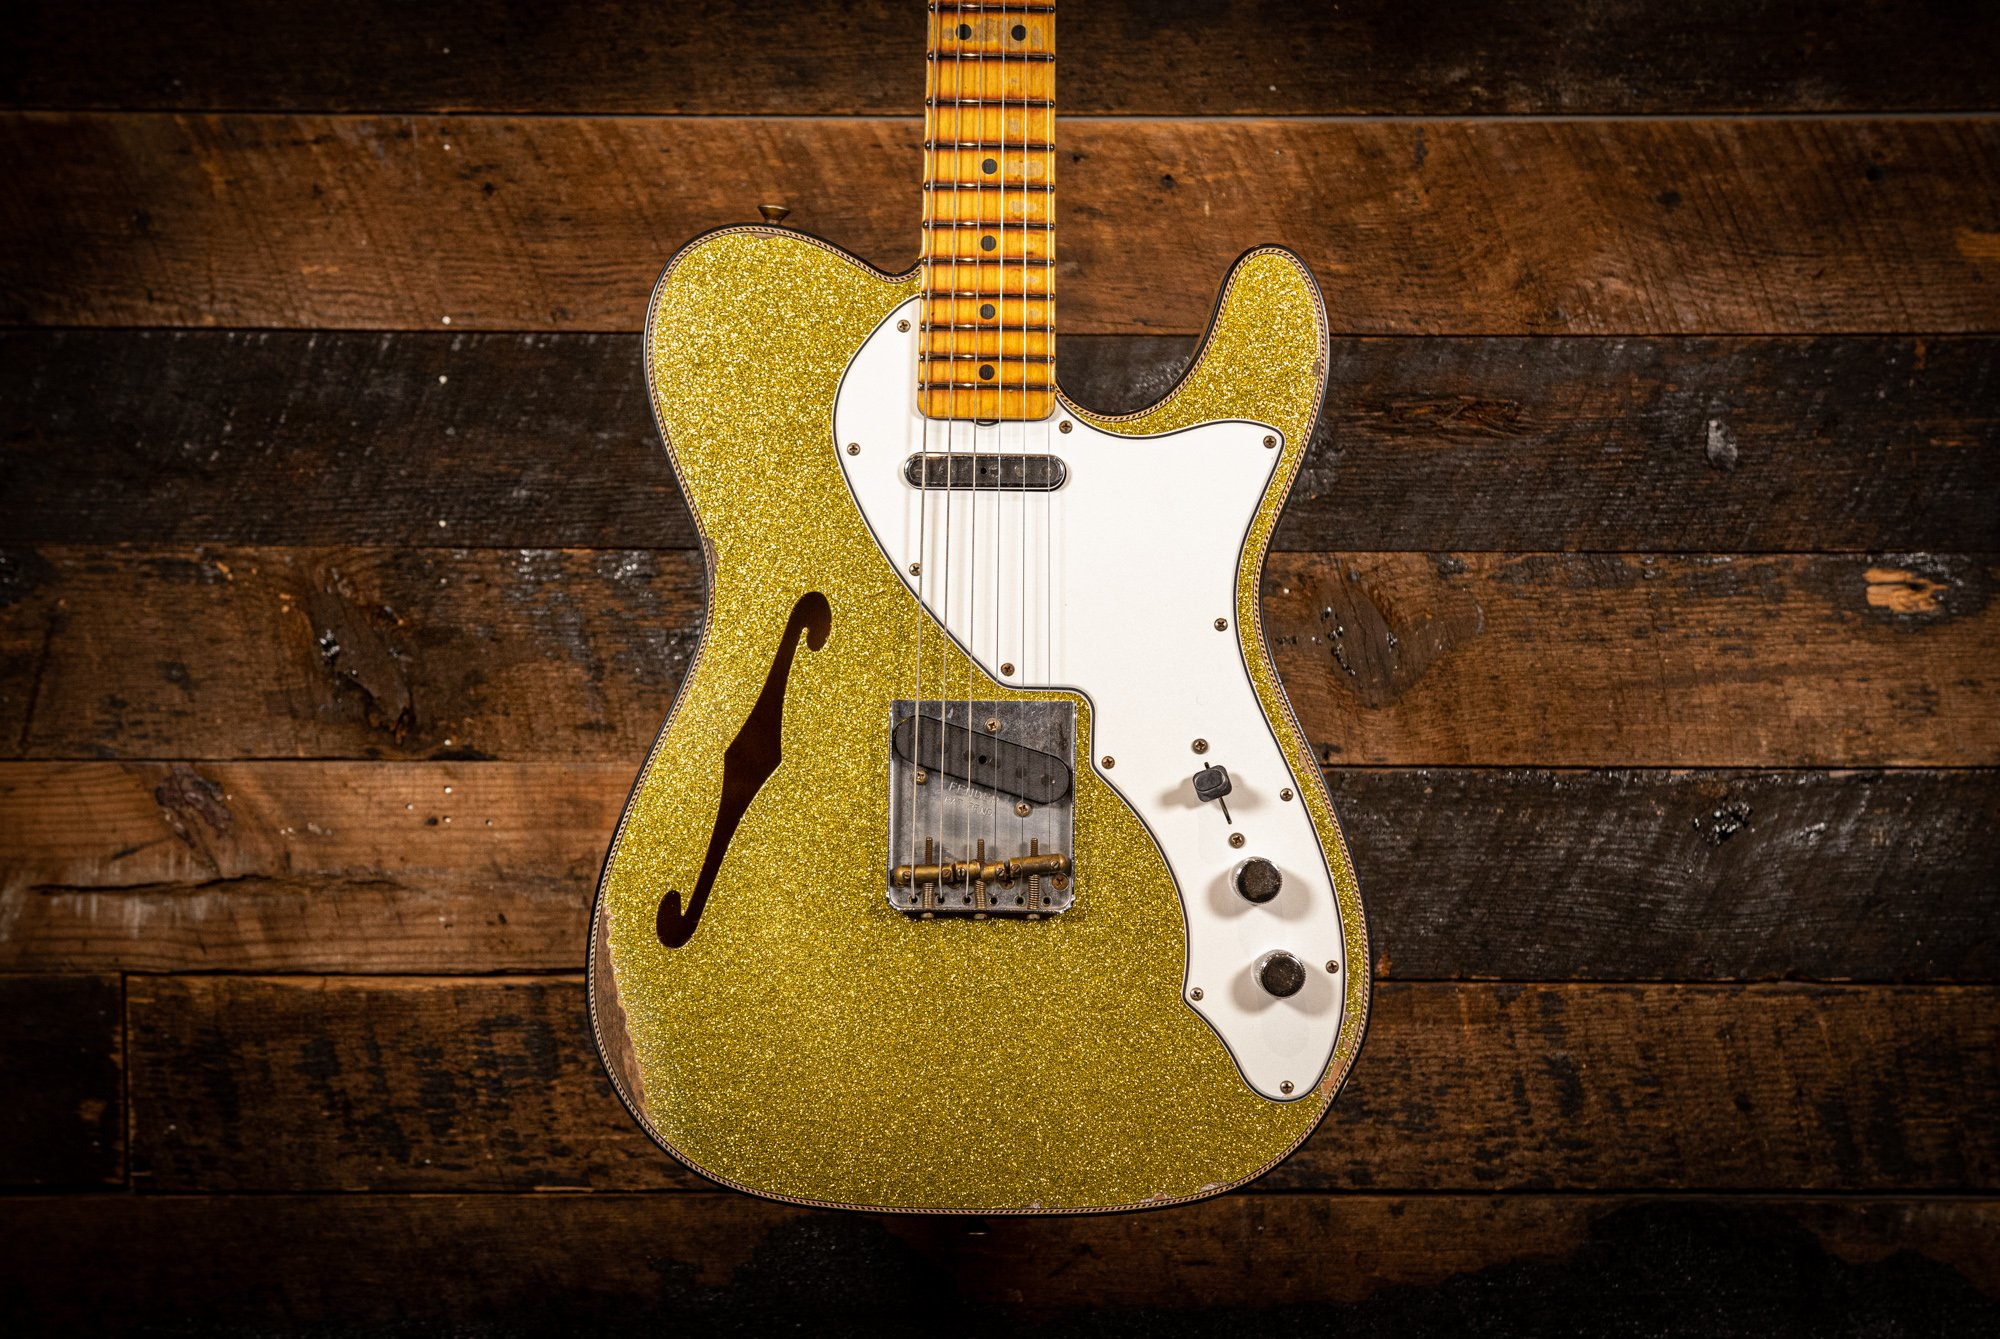 Fender Custom Shop Limited 1960 Tele Custom Thinline Relic in Aged Chartreuse Sparkle